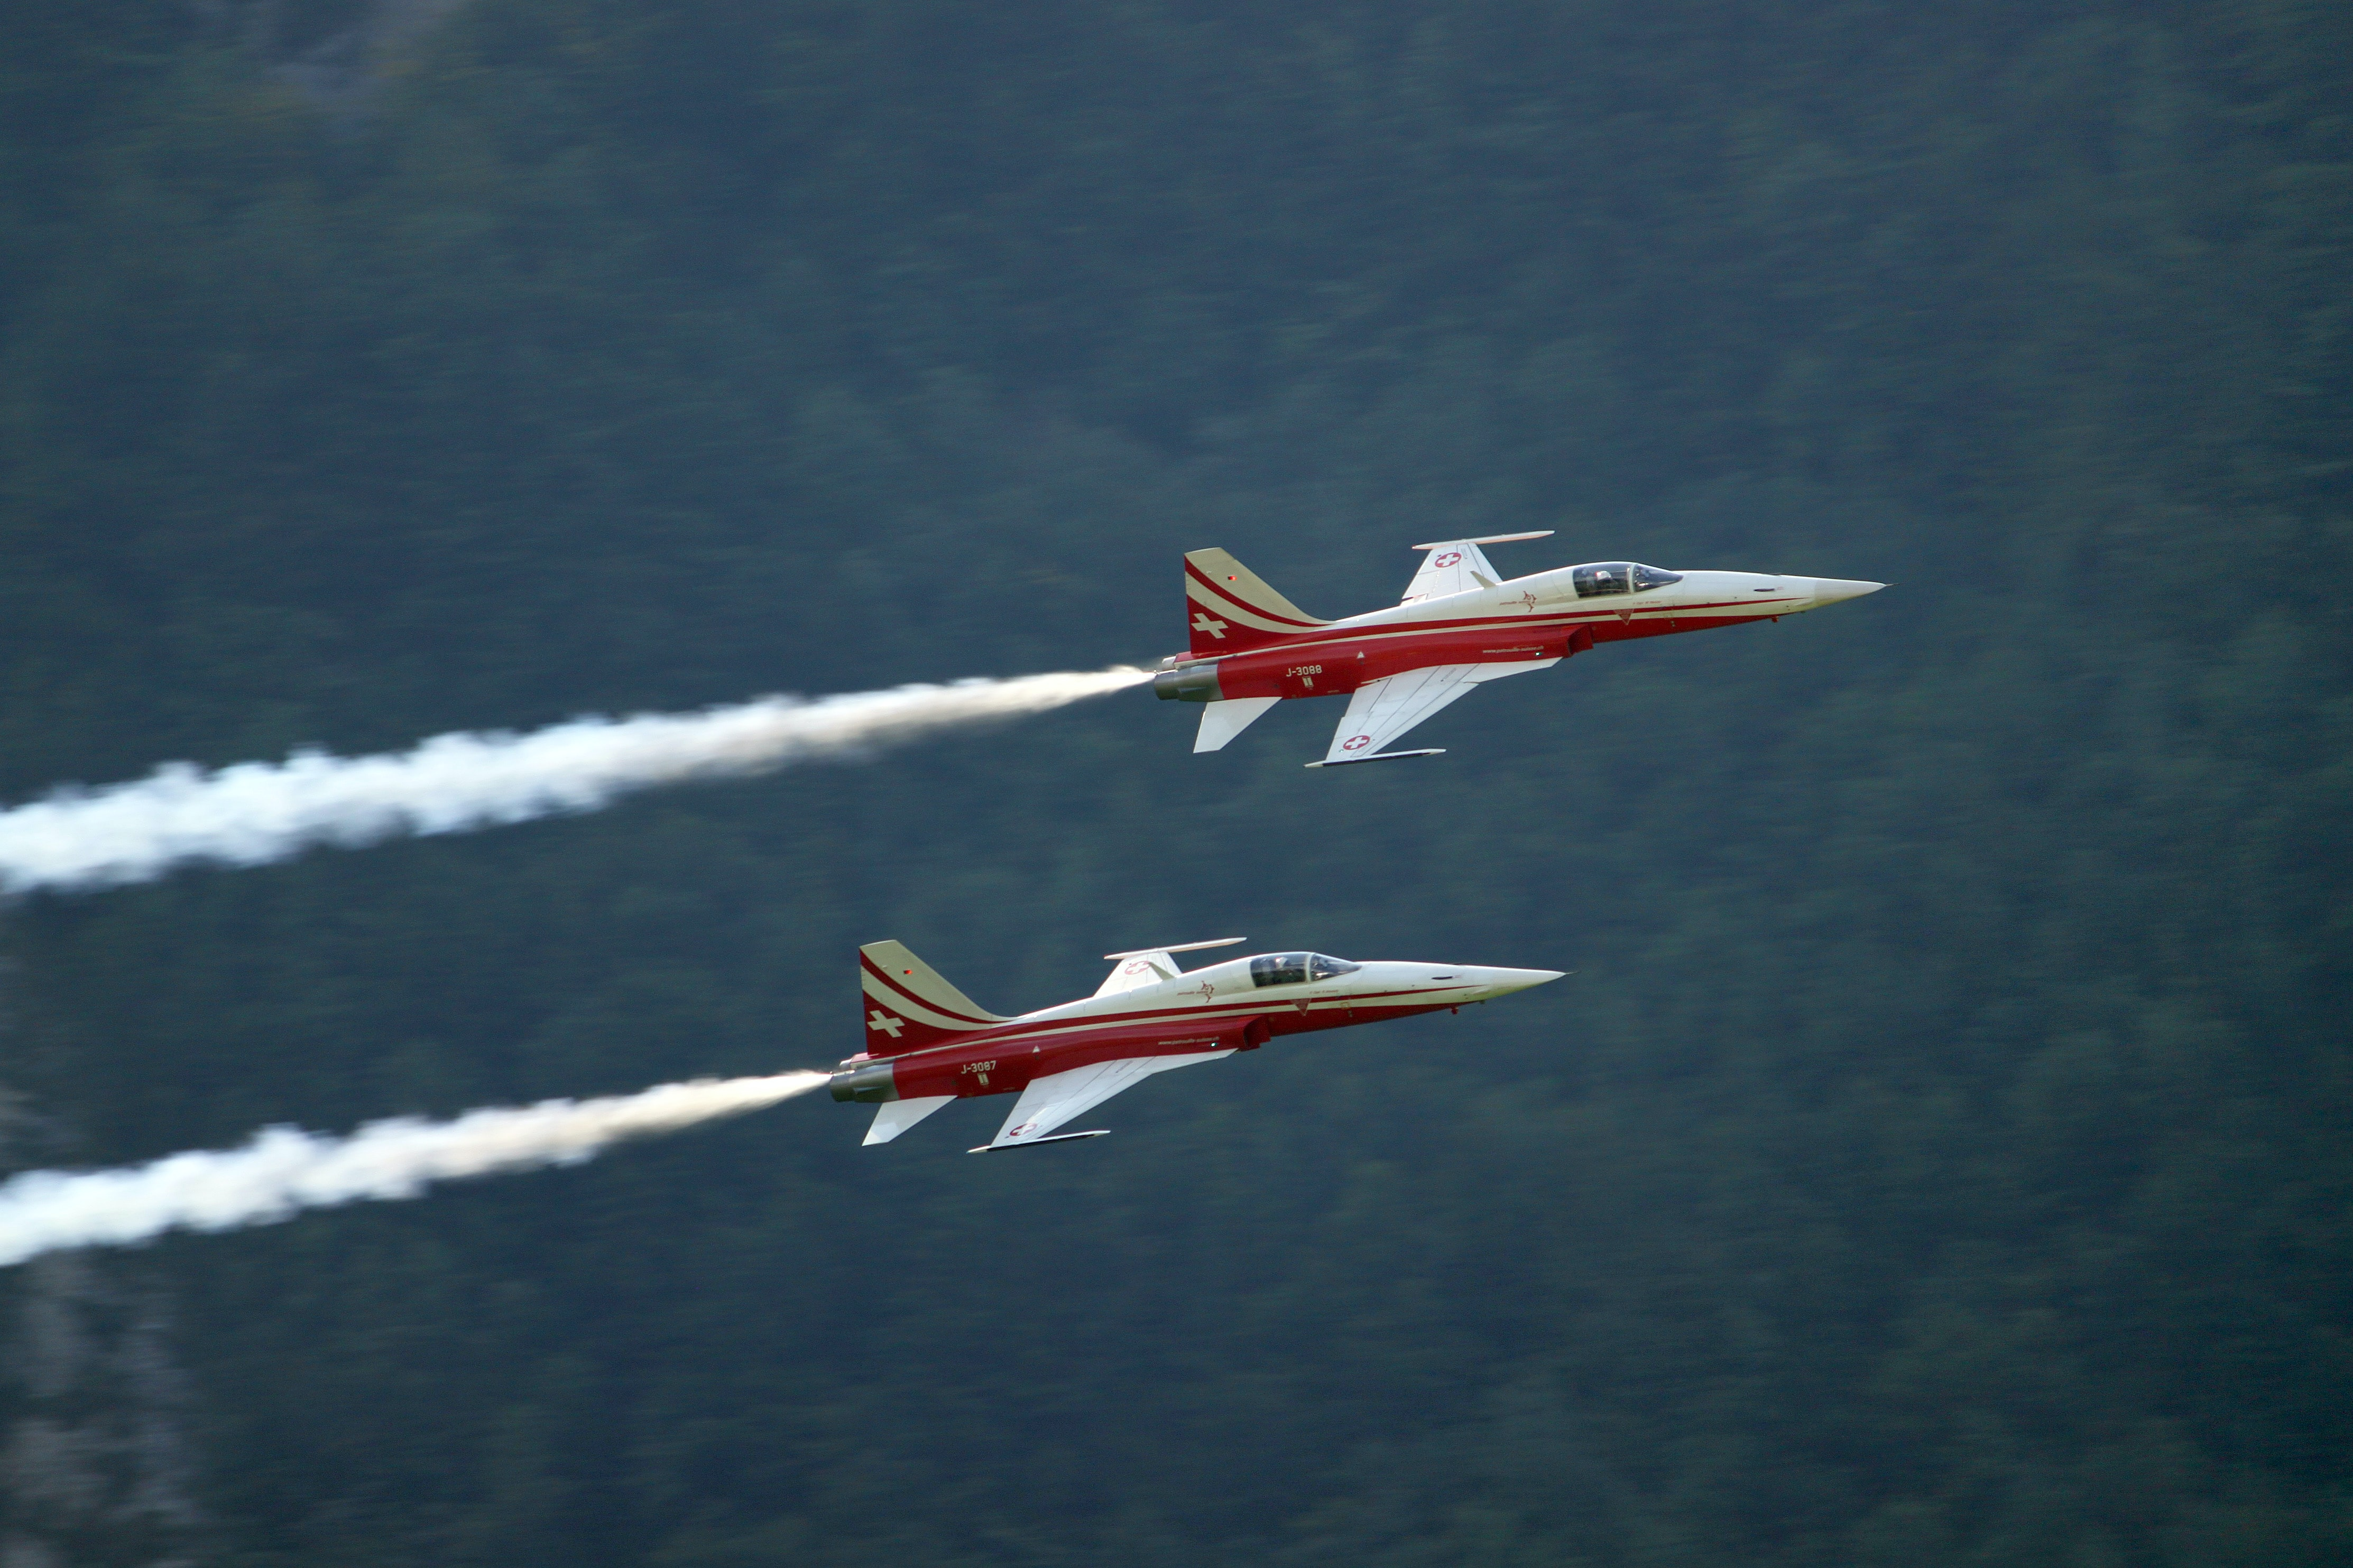 two red-and-white jet planes on air